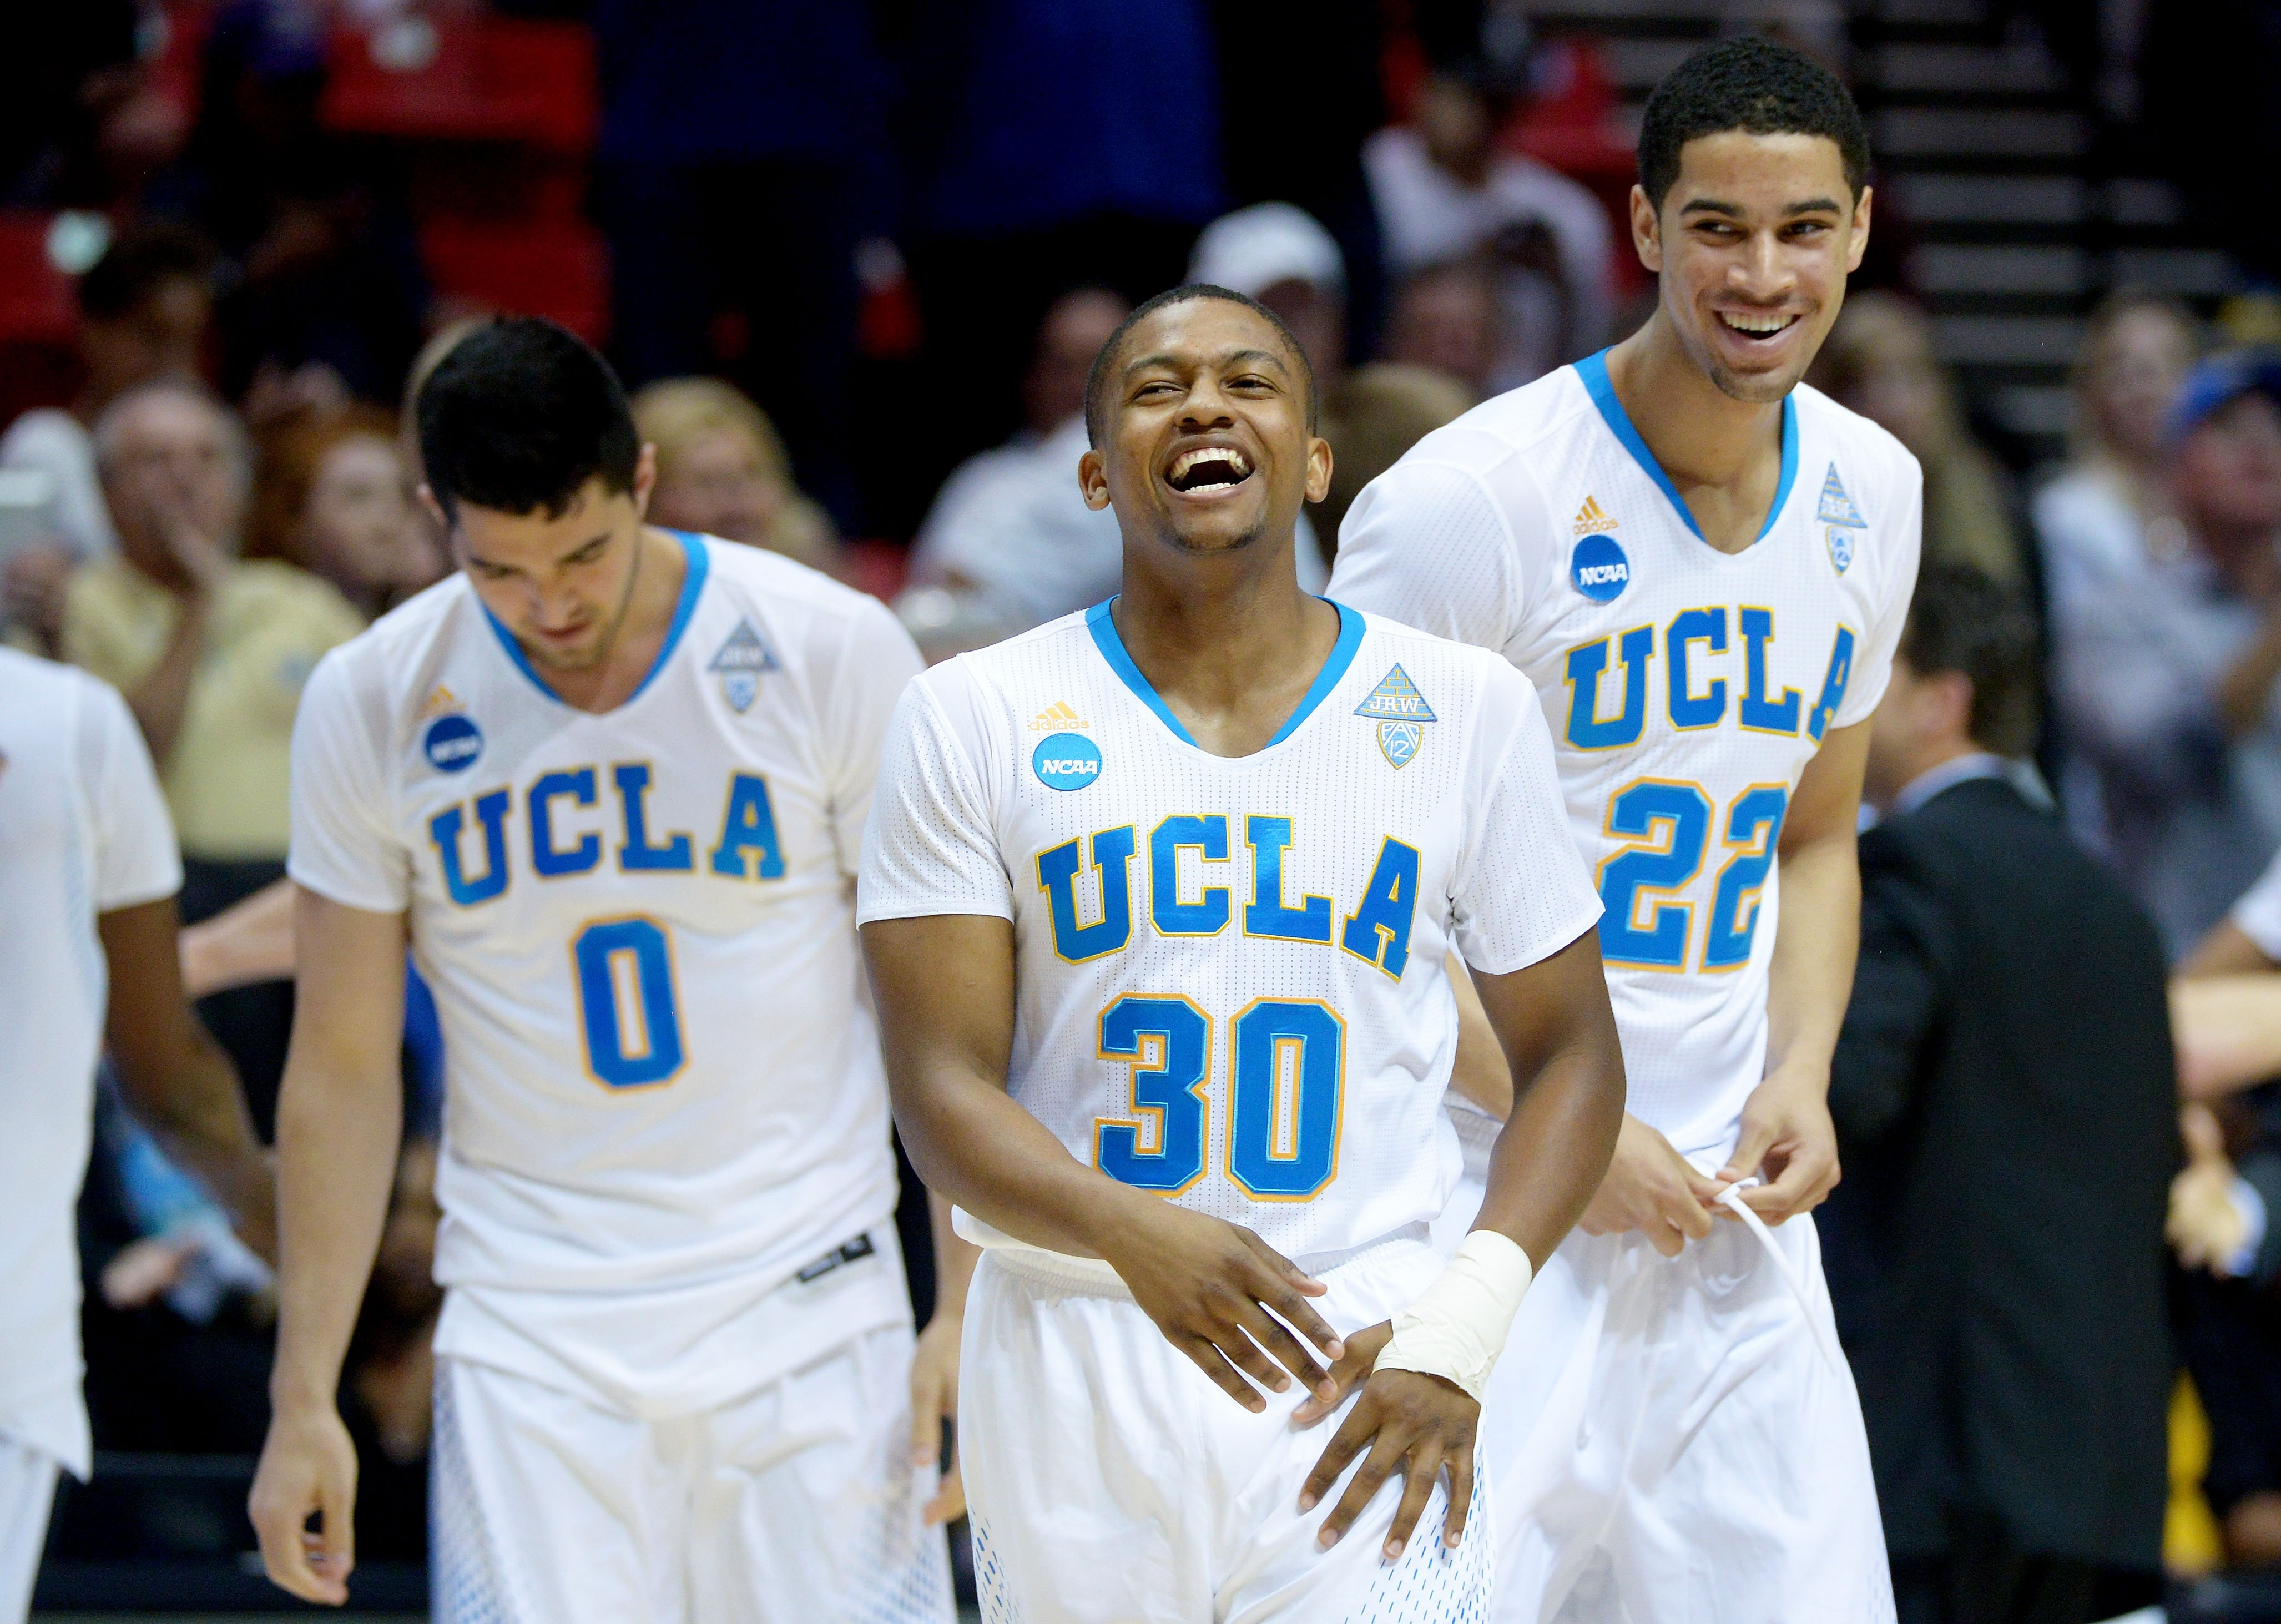 From left: Nick Kazemi, Aubrey Williams and Noah Allen of the UCLA Bruins celebrate their 77 to 60 win over the Stephen F. Austin Lumberjacks during the third round of the 2014 NCAA Tournament on March 23, 2014.